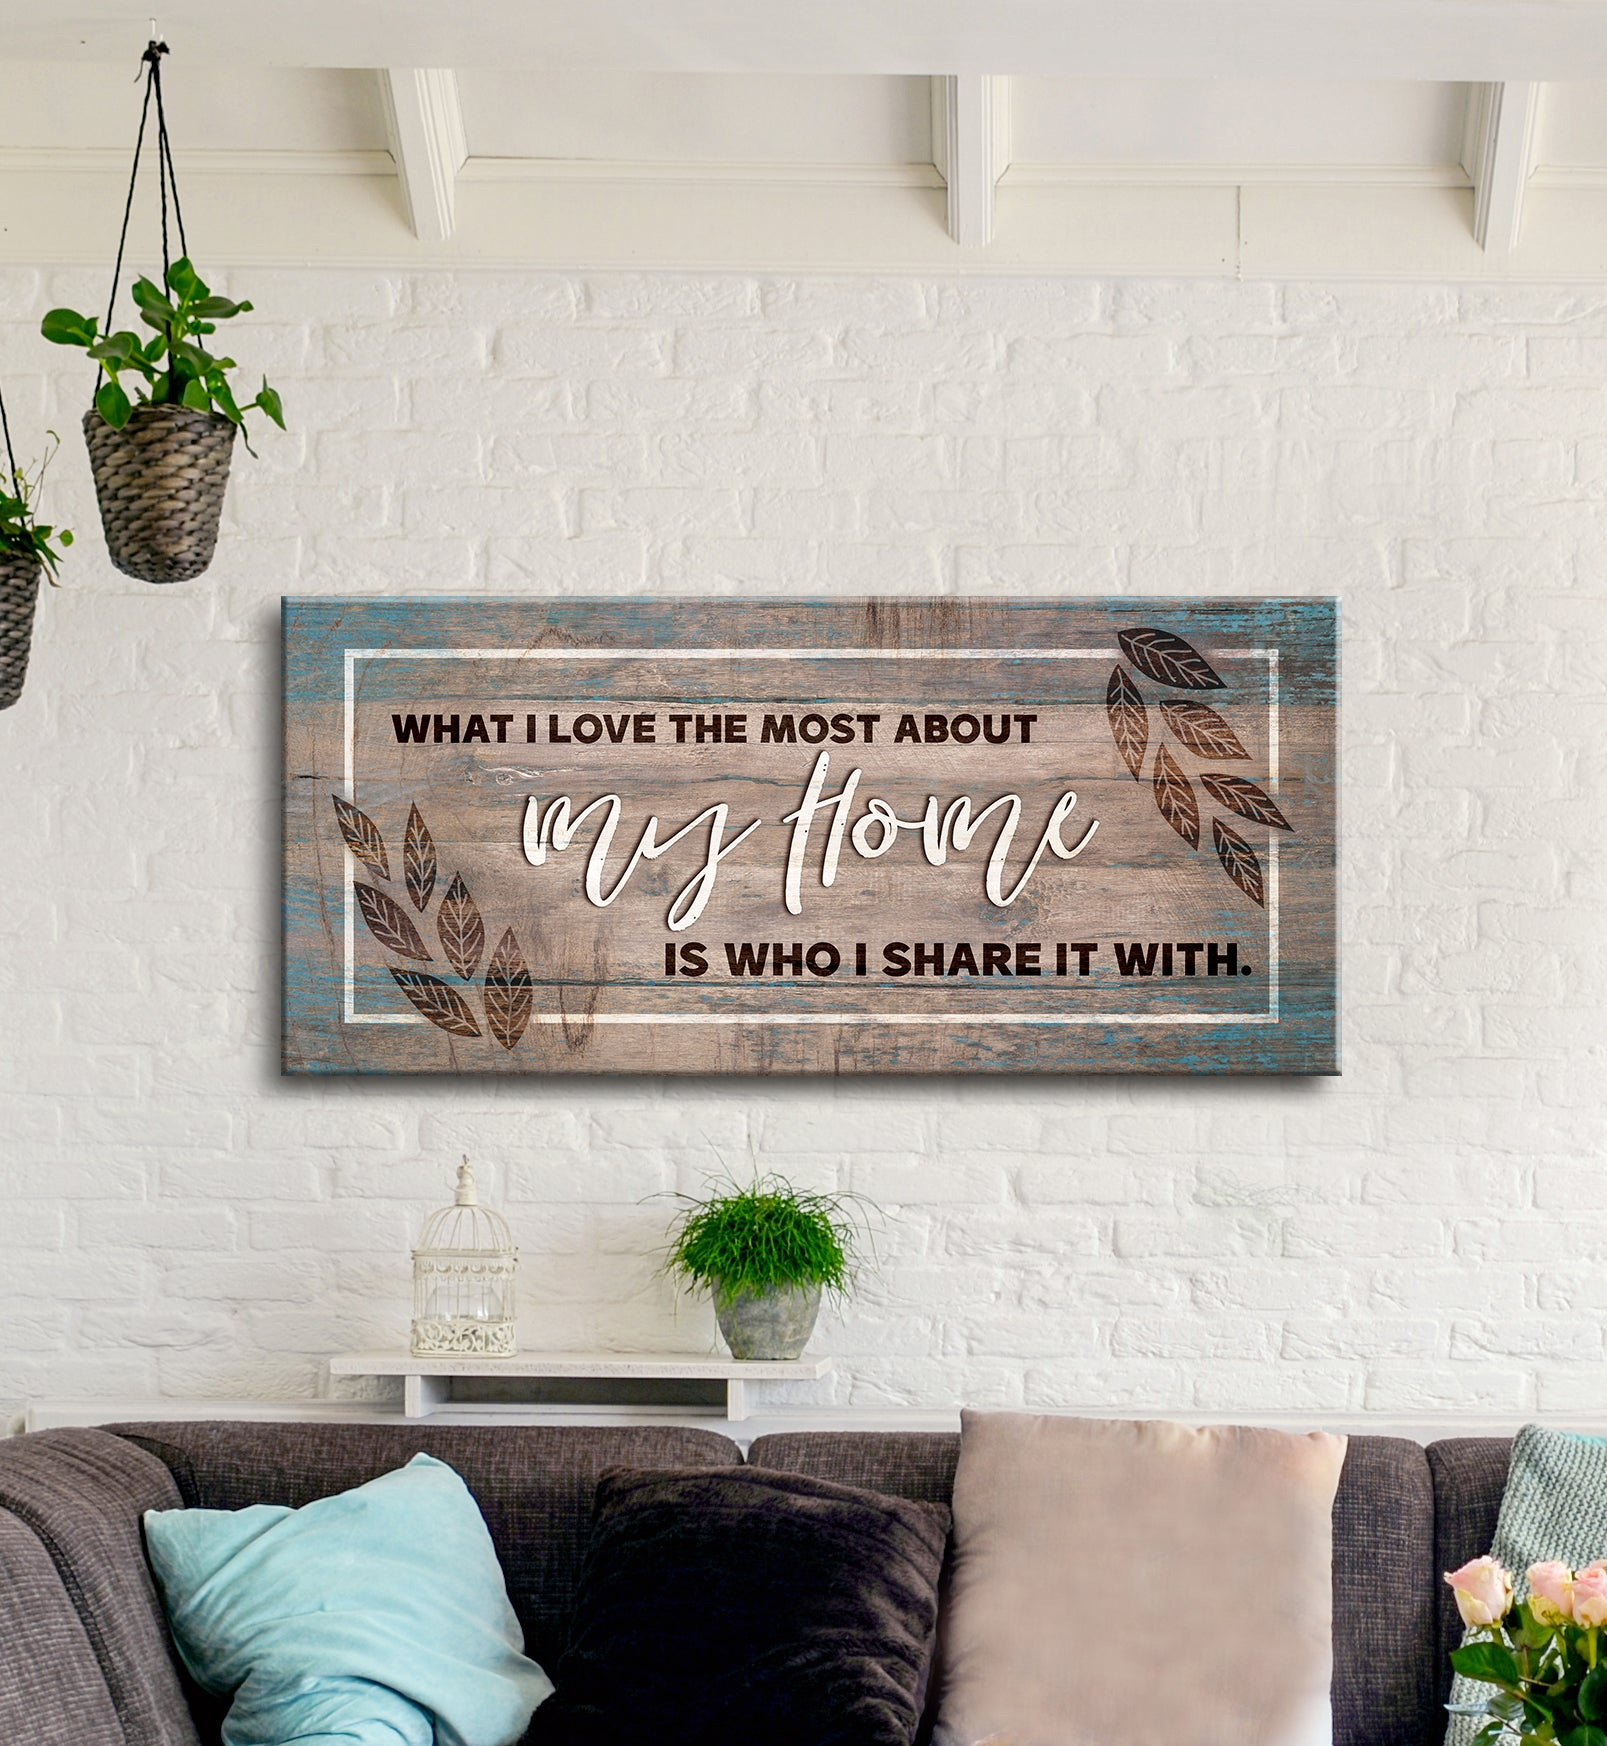 Home Wall Art: What i love the most about my home V2 (Wood Frame Ready To Hang)